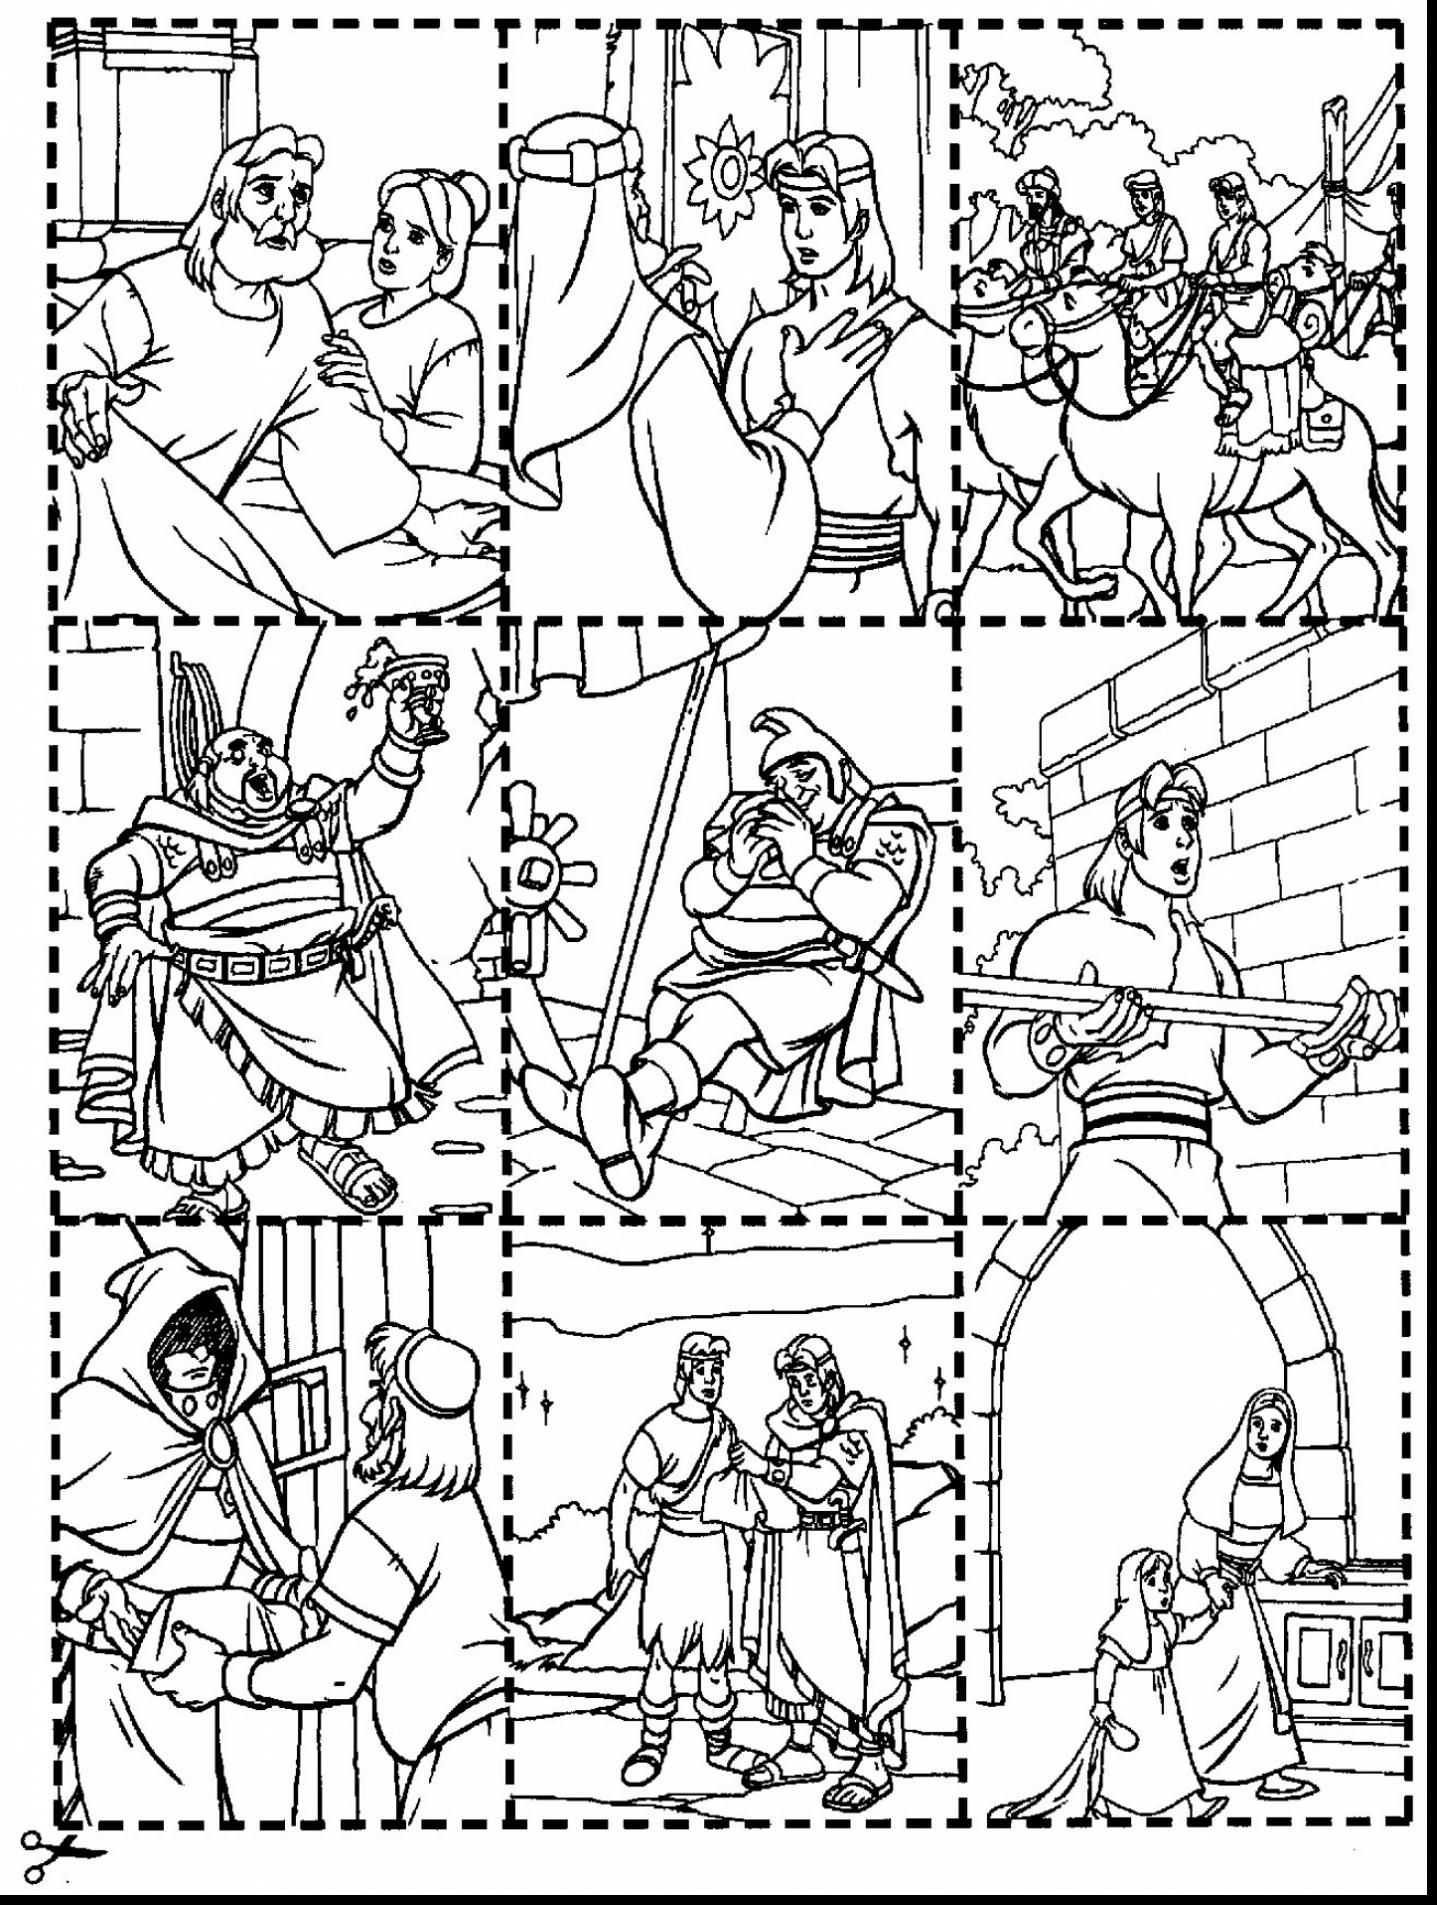 Good Lds Nephi And The Brass Plates Coloring Pages With Book Of Mormon Coloring Pages And Book Of Mormon Coloring Sheets Fhe Lds Coloring Pages Nephi